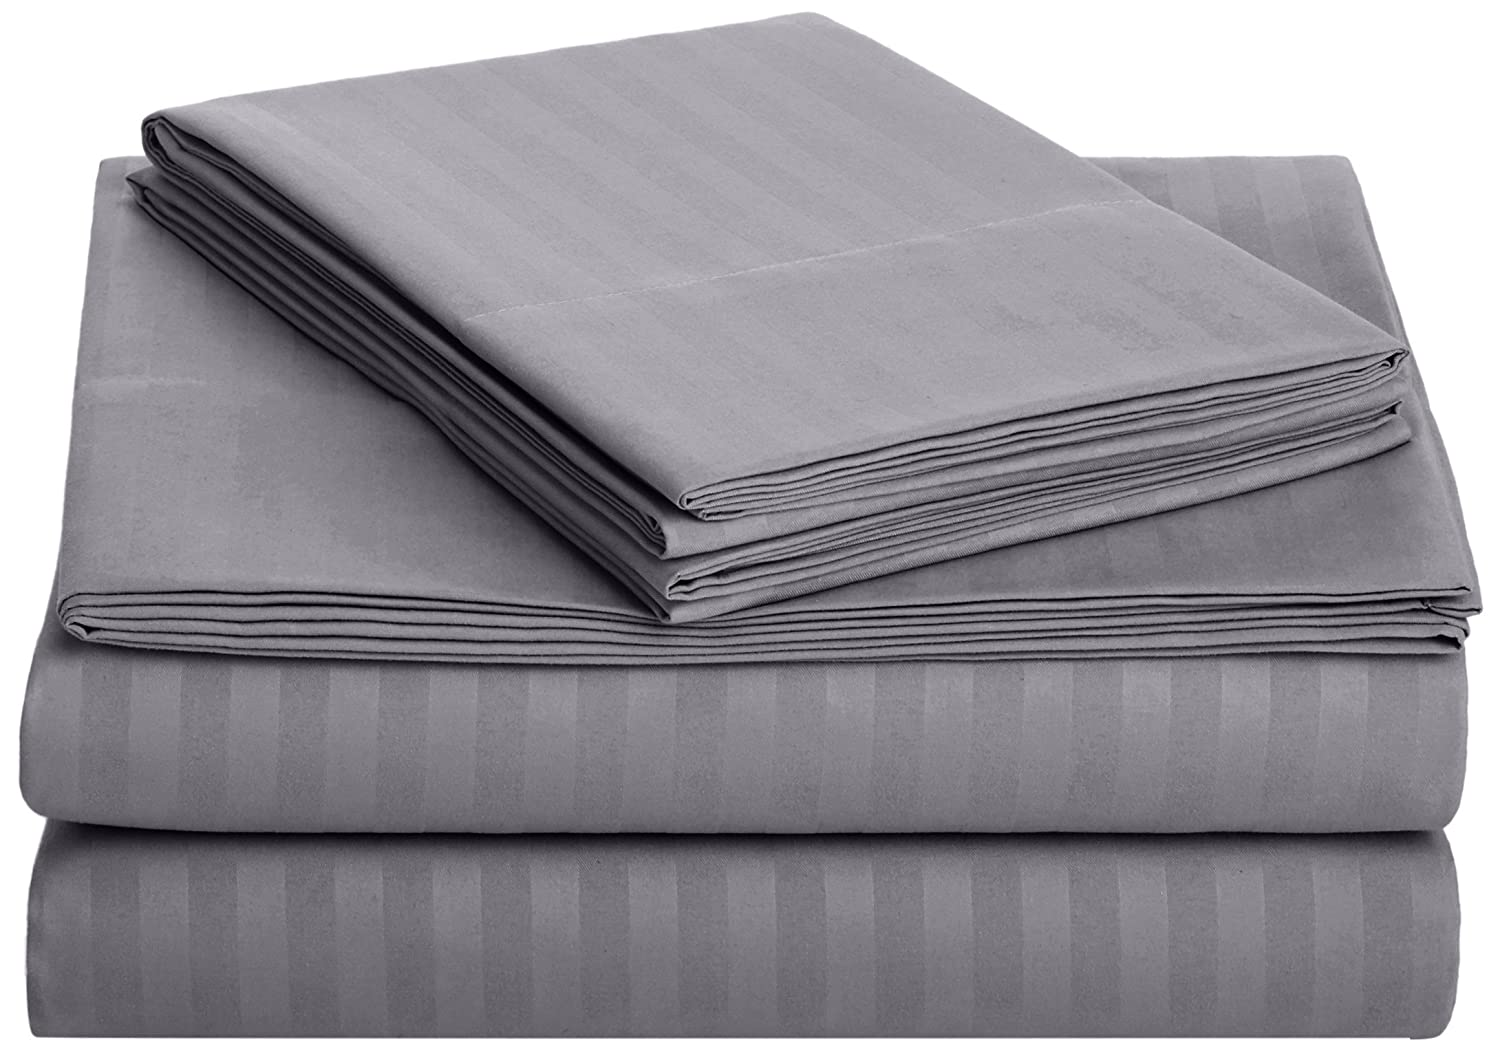 AmazonBasics Deluxe Microfiber Striped Sheet Set, Dark Grey, King